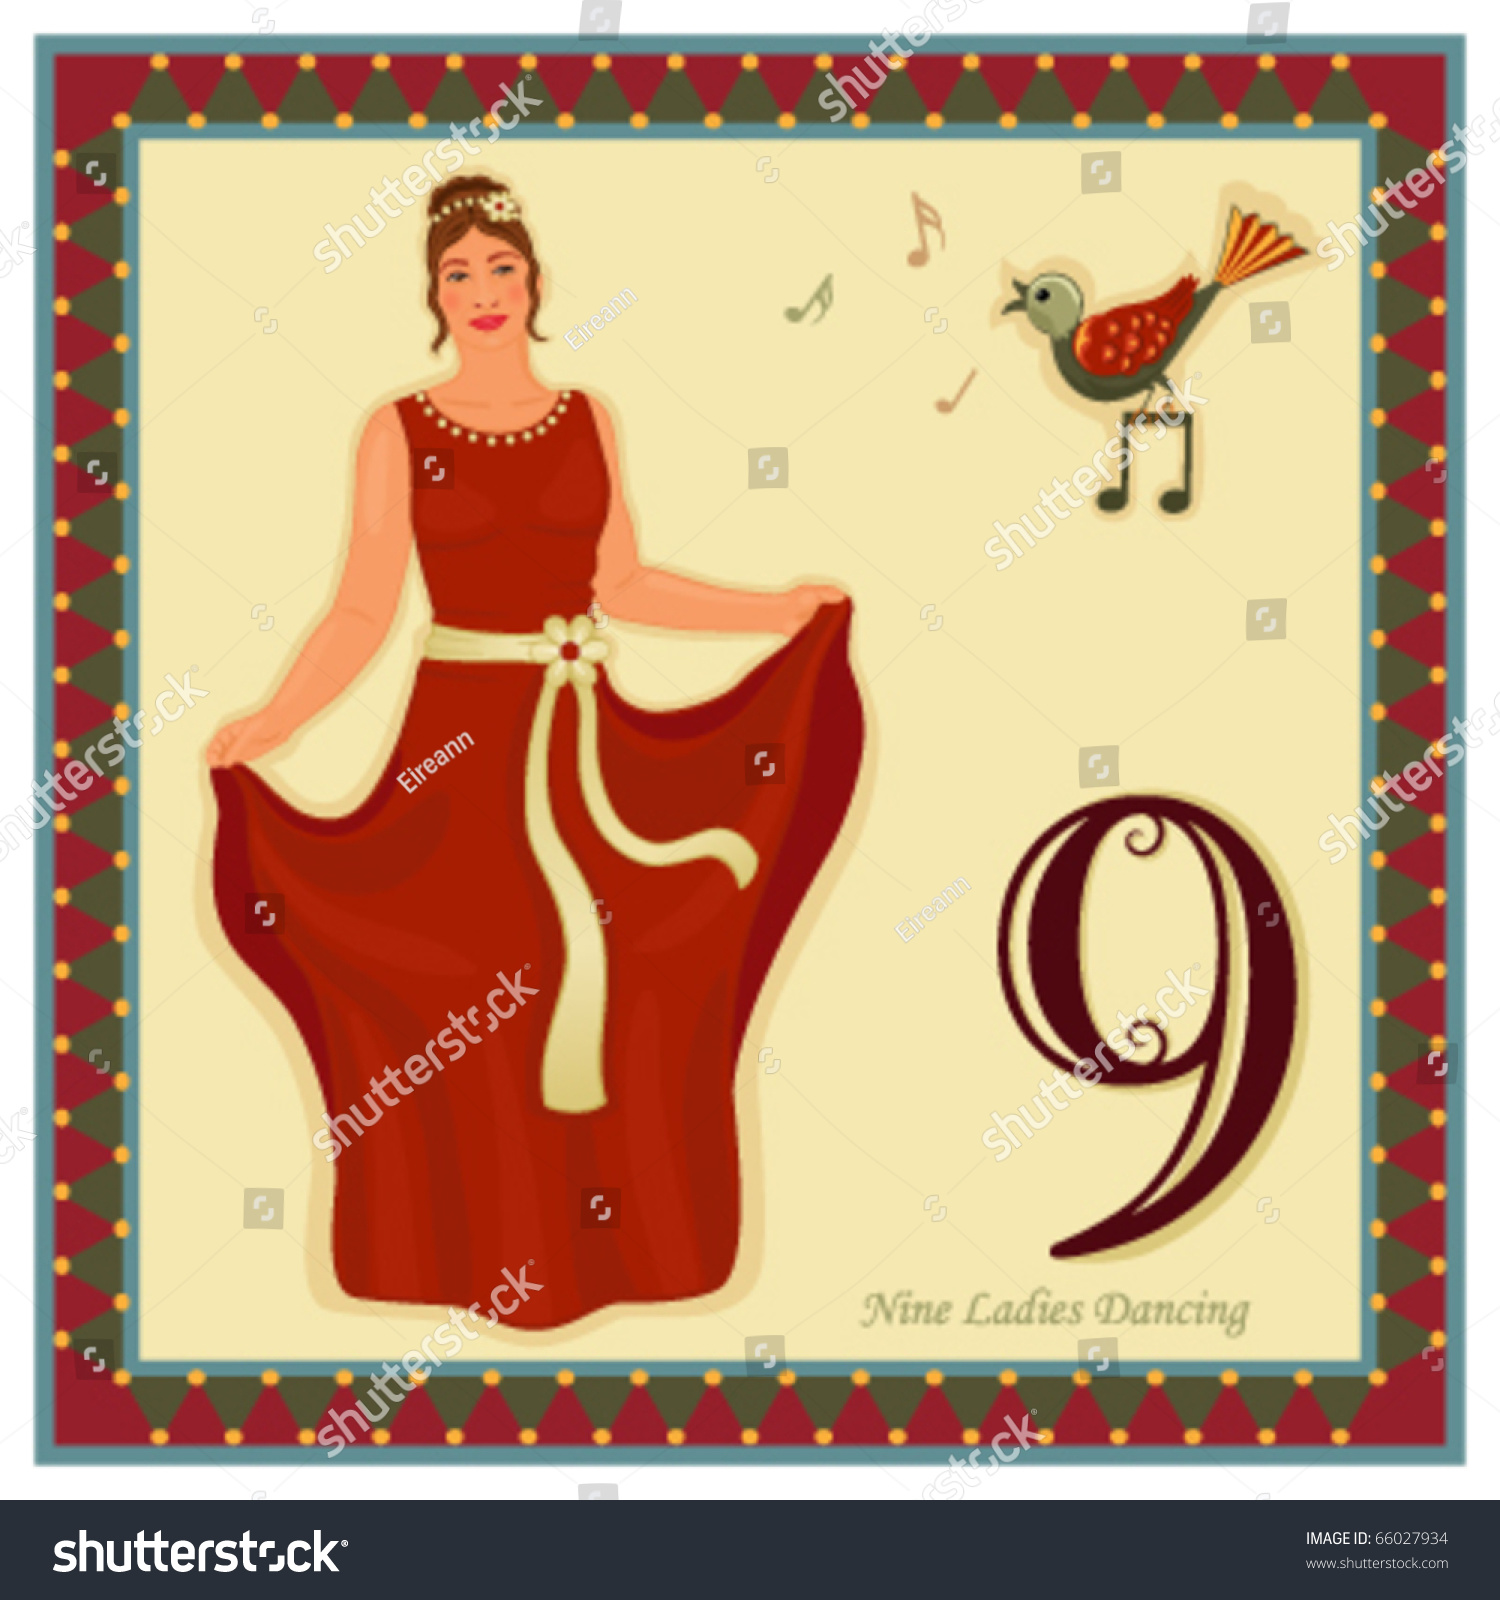 hight resolution of the 12 days of christmas 9 th day nine ladies dancing vector illustration